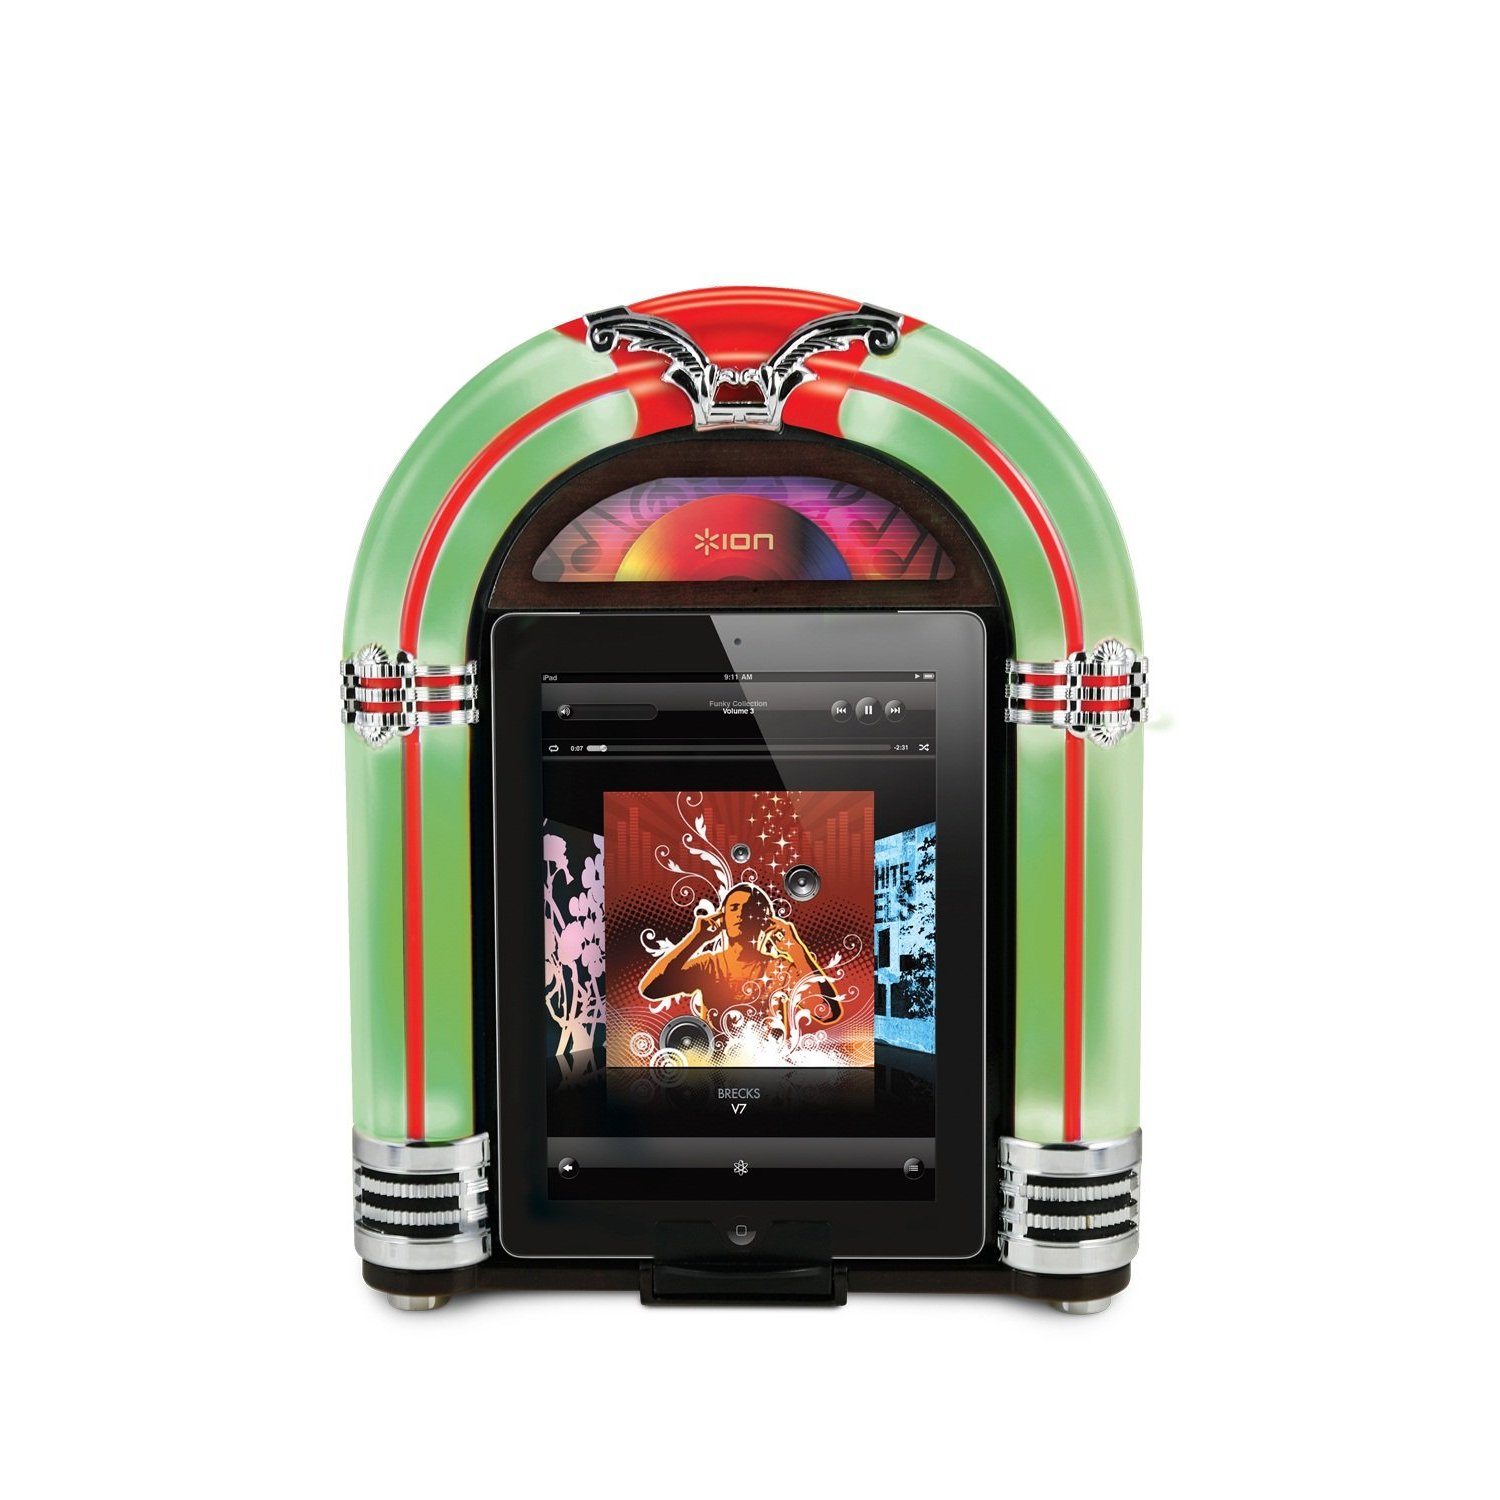 Jukebox Dock